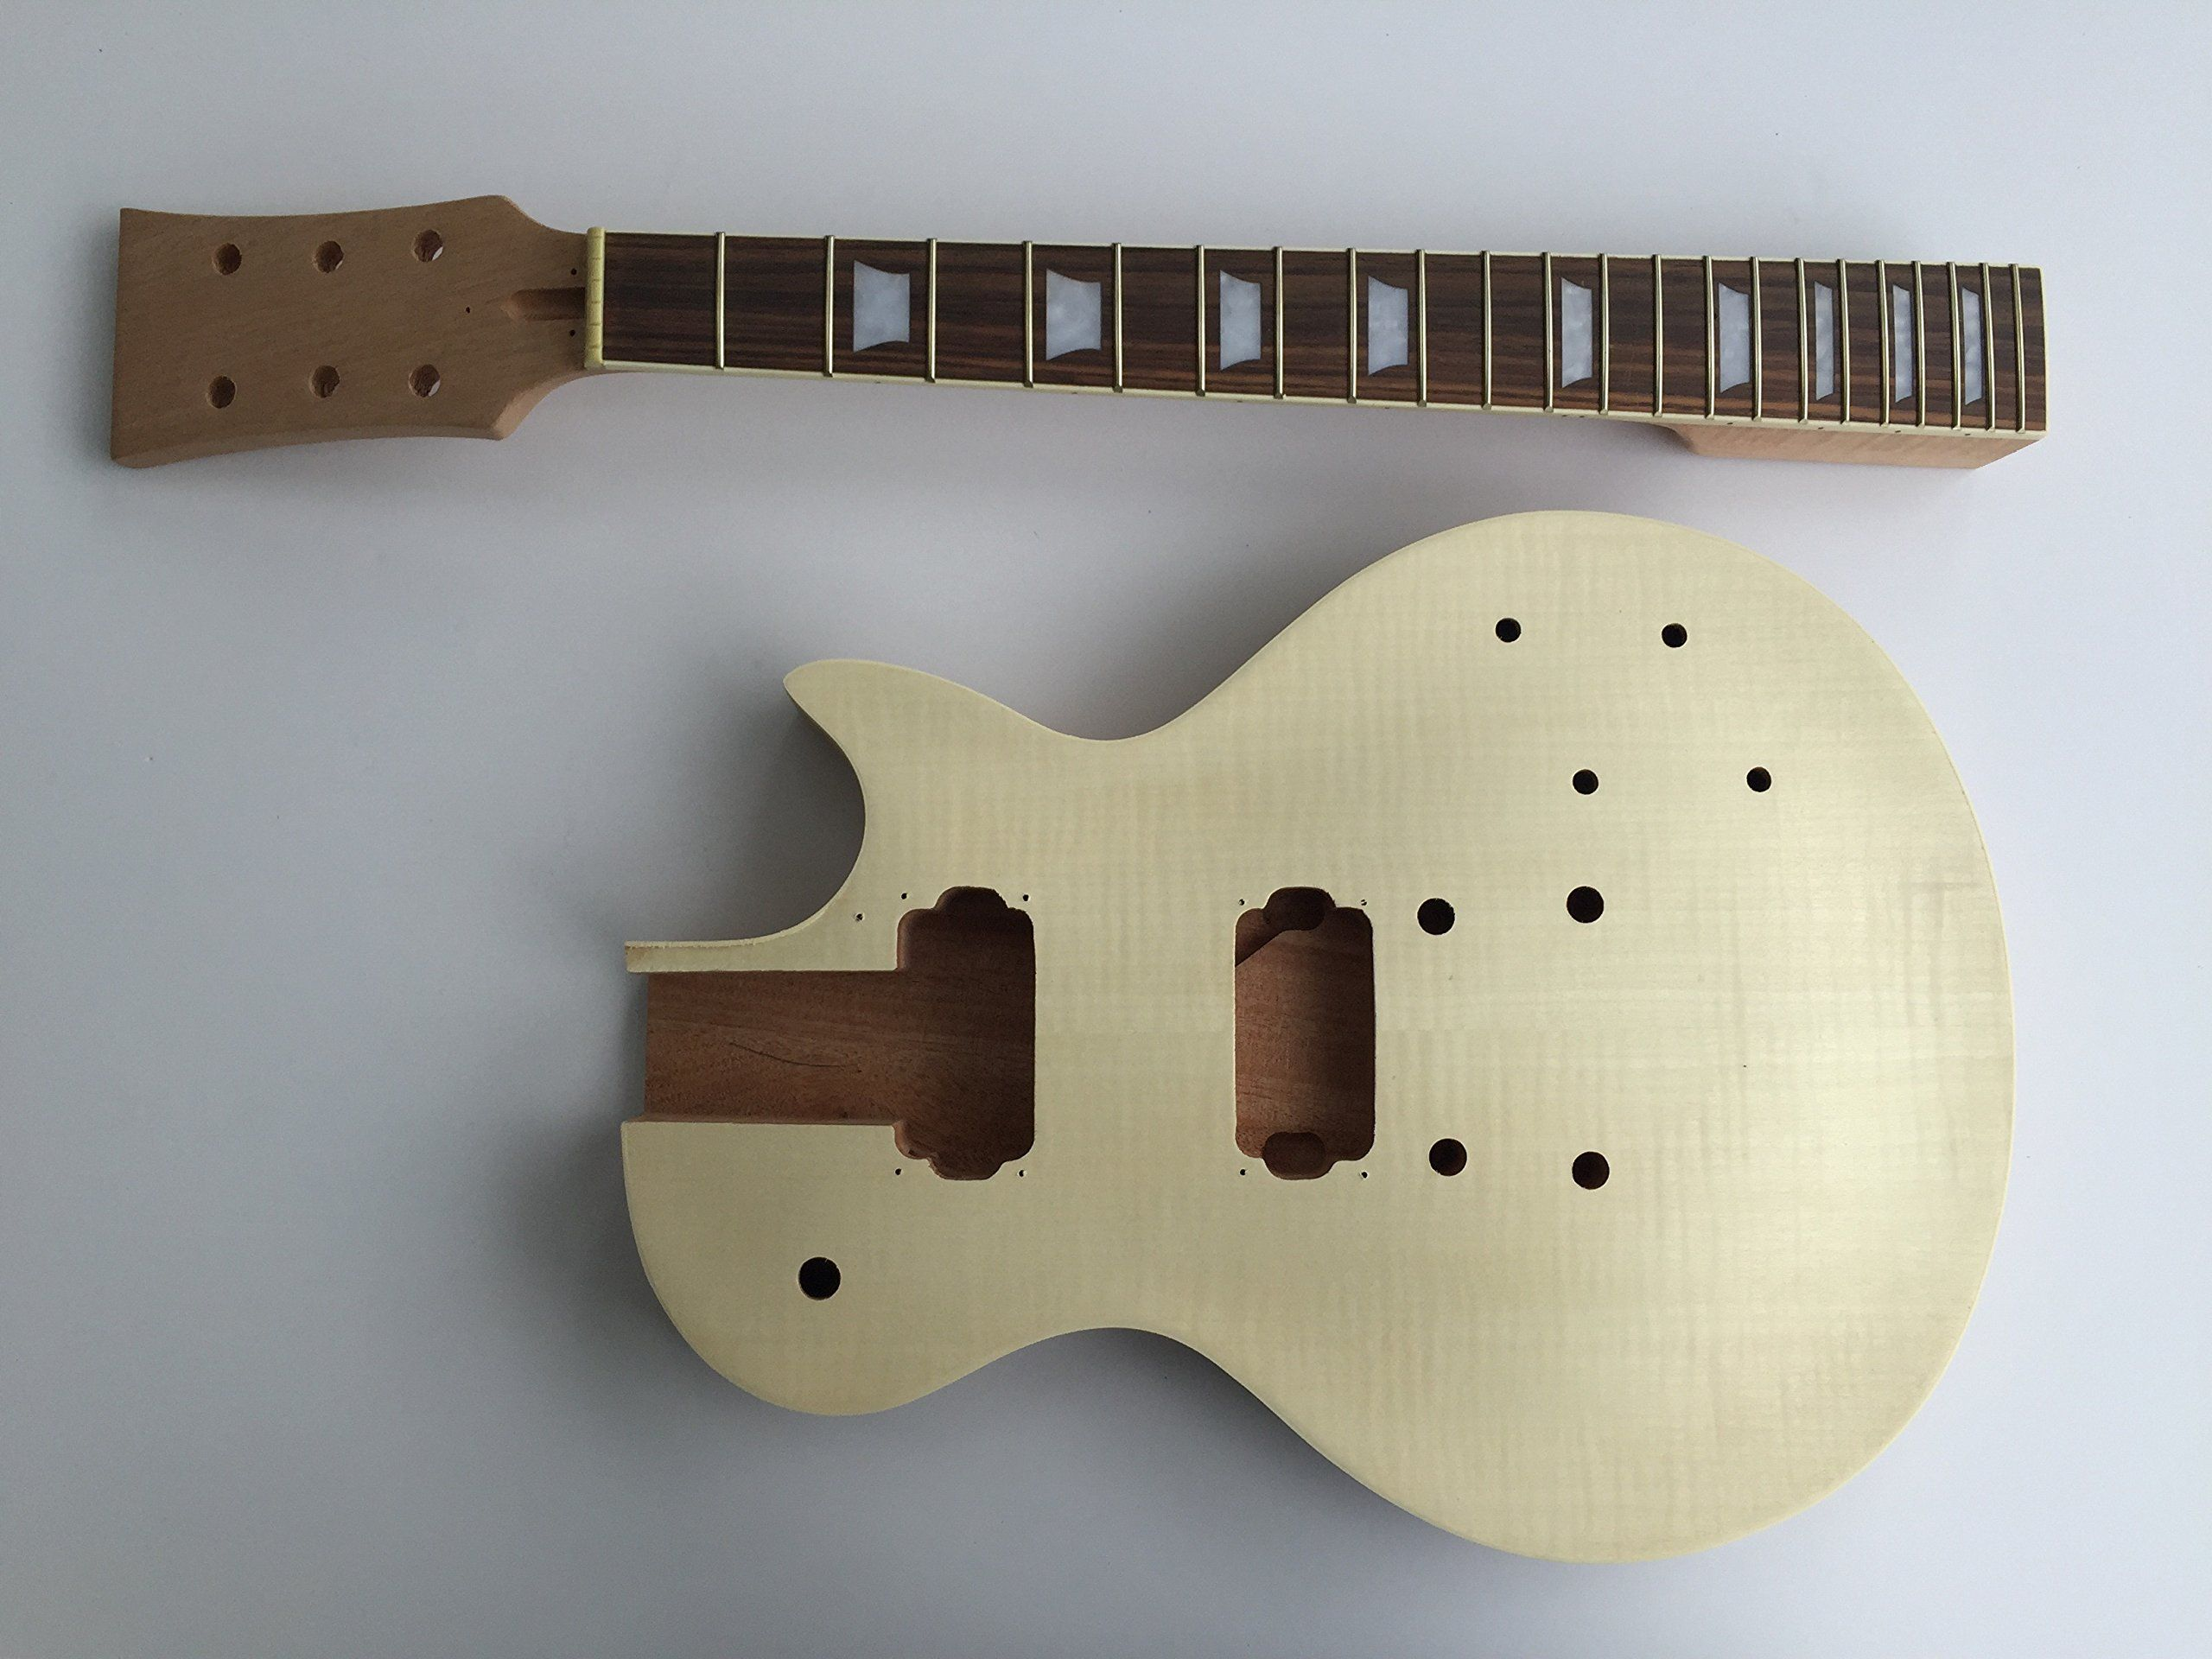 Diy electric guitar kit lp mahogany style build your own